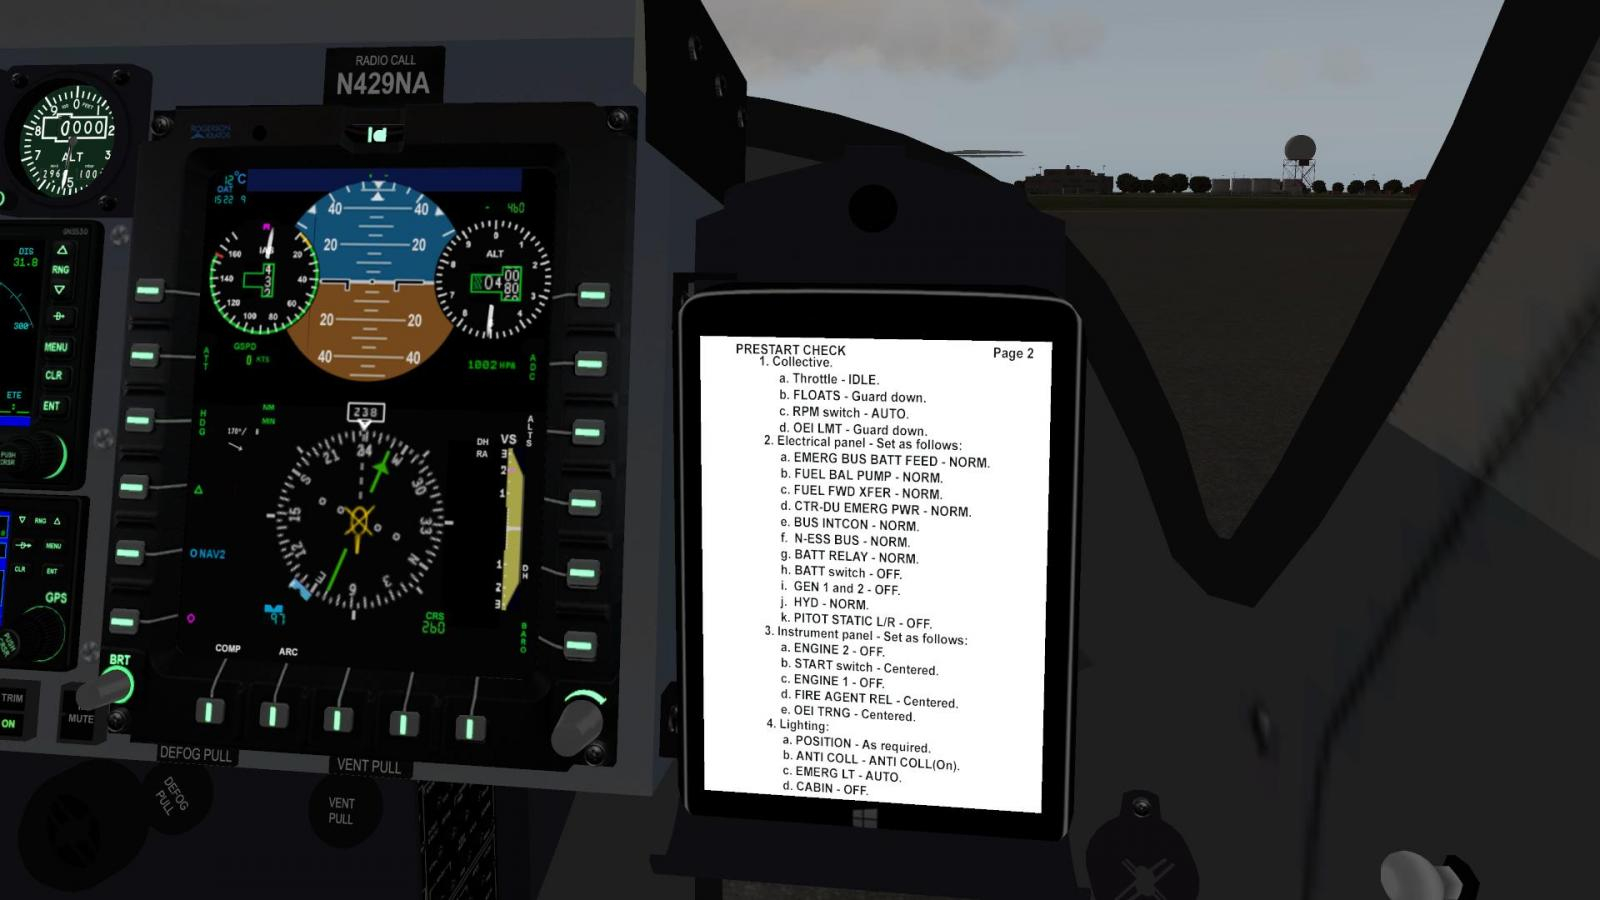 Bell 429 - Page 2 - Helicopter - Development Notice - X-Plane Org Forum